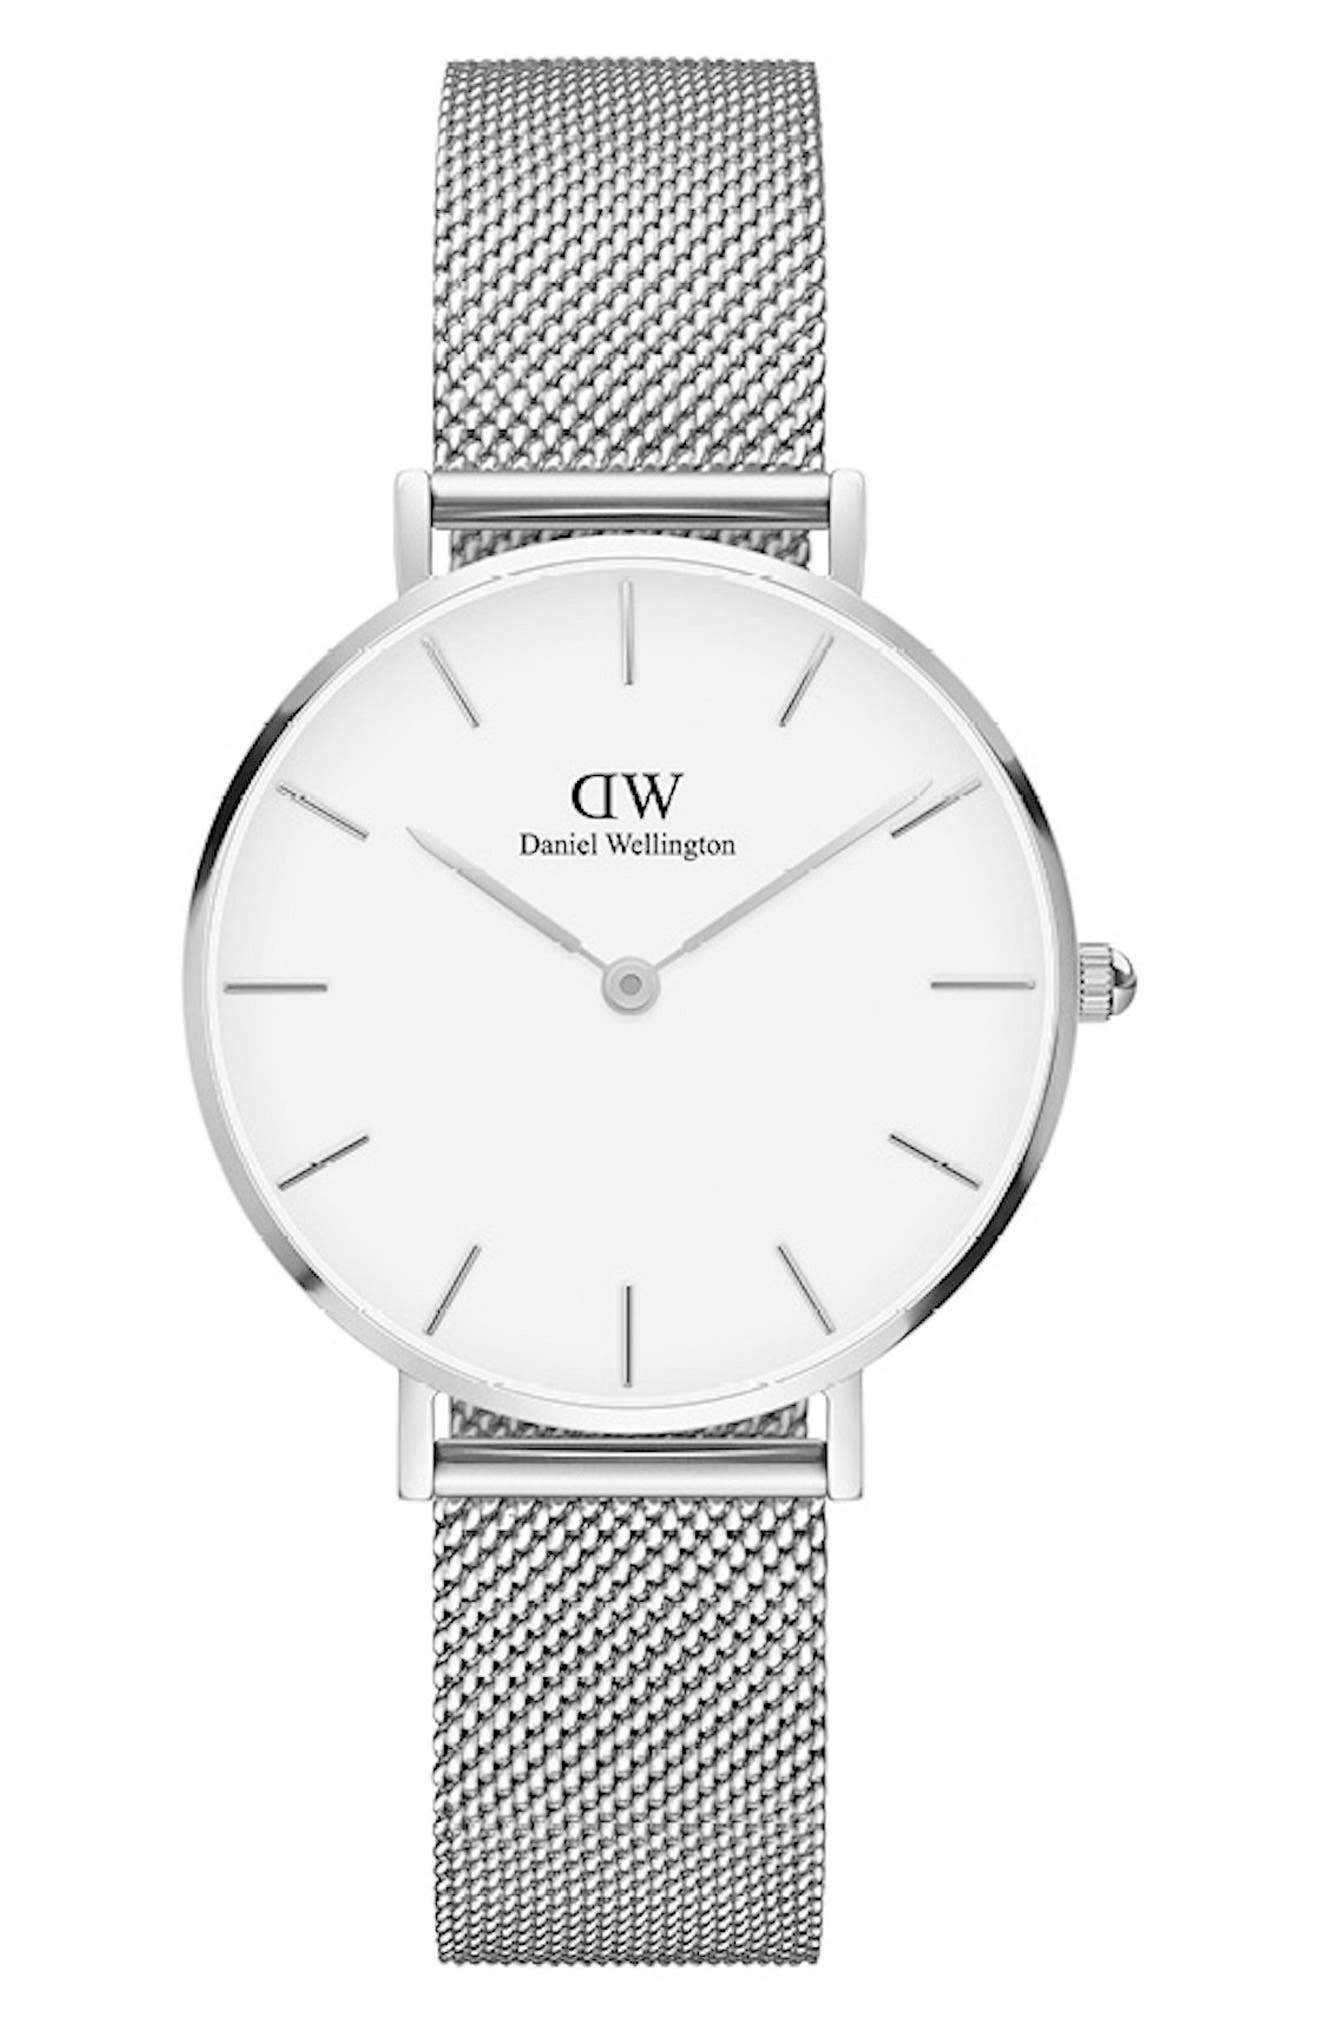 DANIEL WELLINGTON 32Mm Classic Petite Melrose Bracelet Watch W/White Dial in Silver